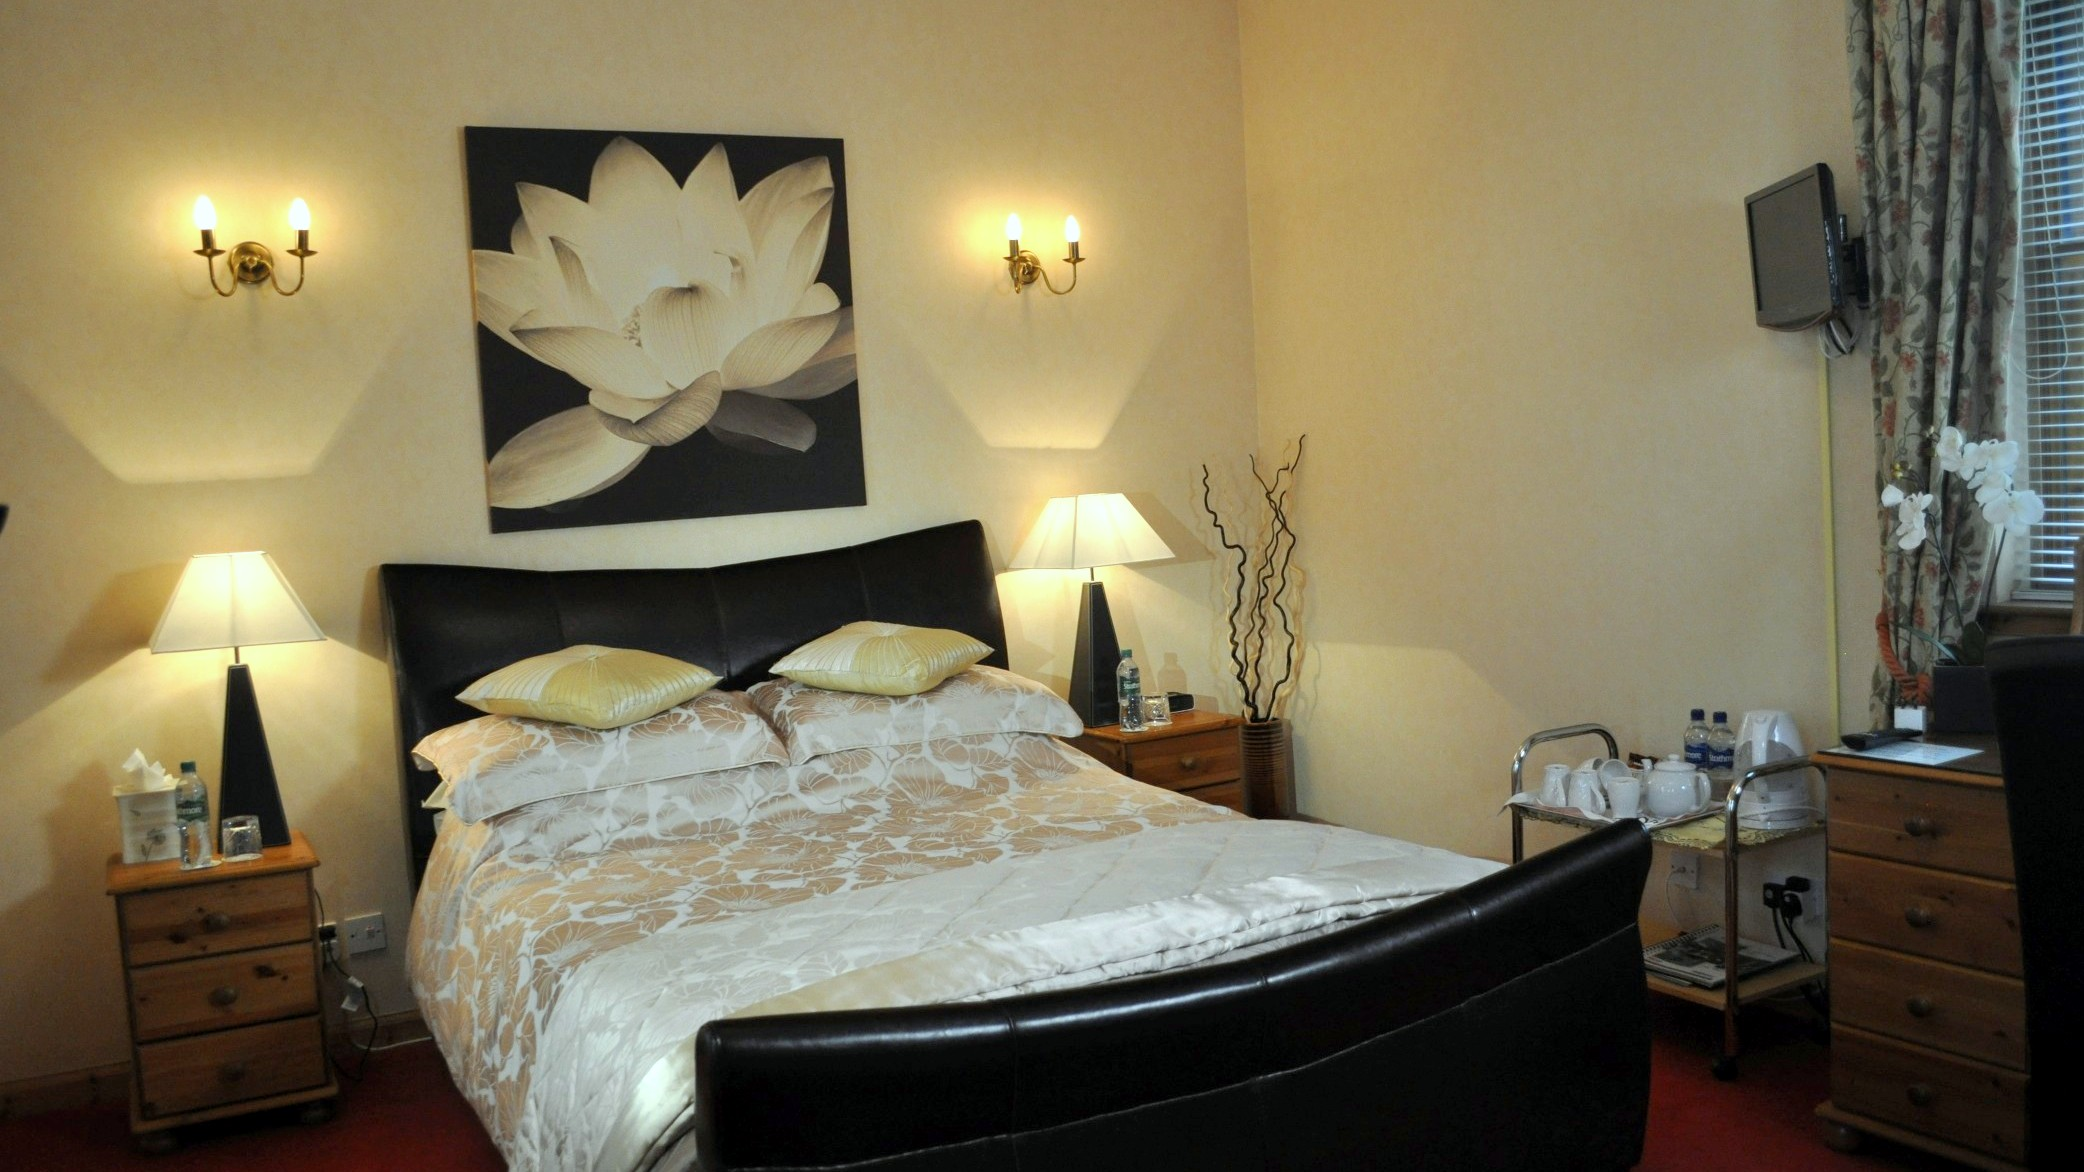 Guest Bedroom at Strawberry Bank House, Linlithgow